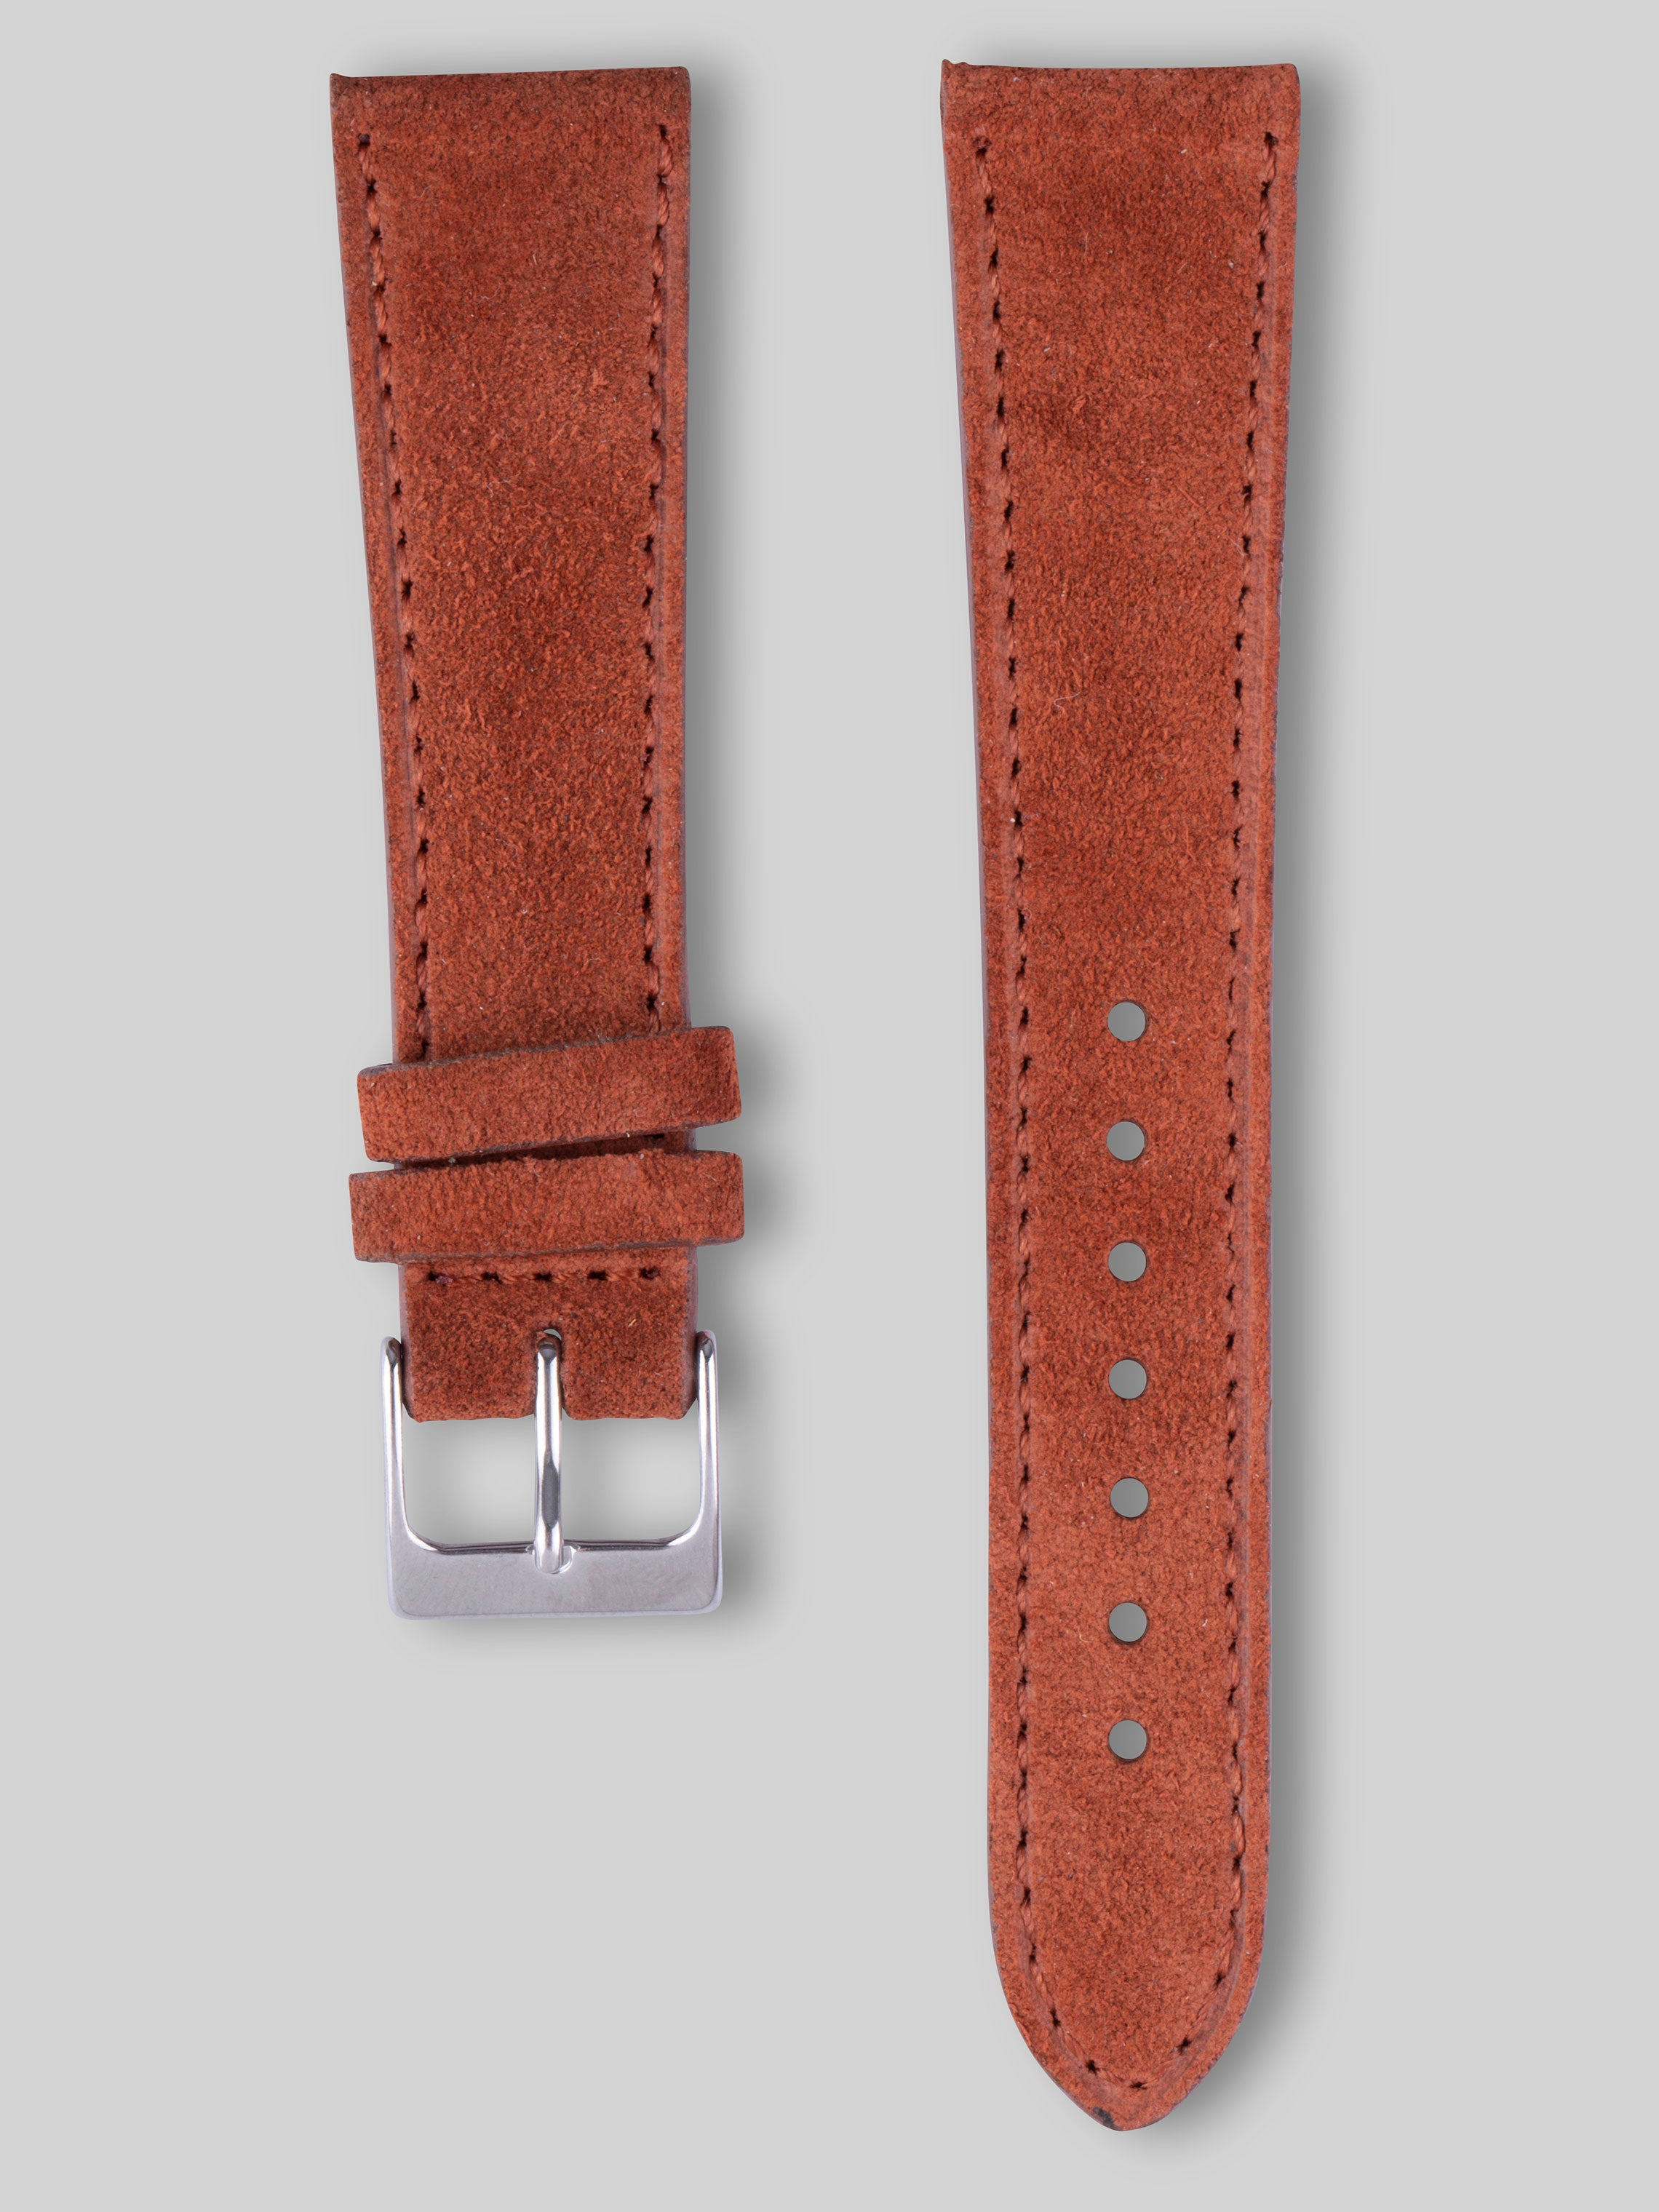 Suede Watch Strap - Barcelona